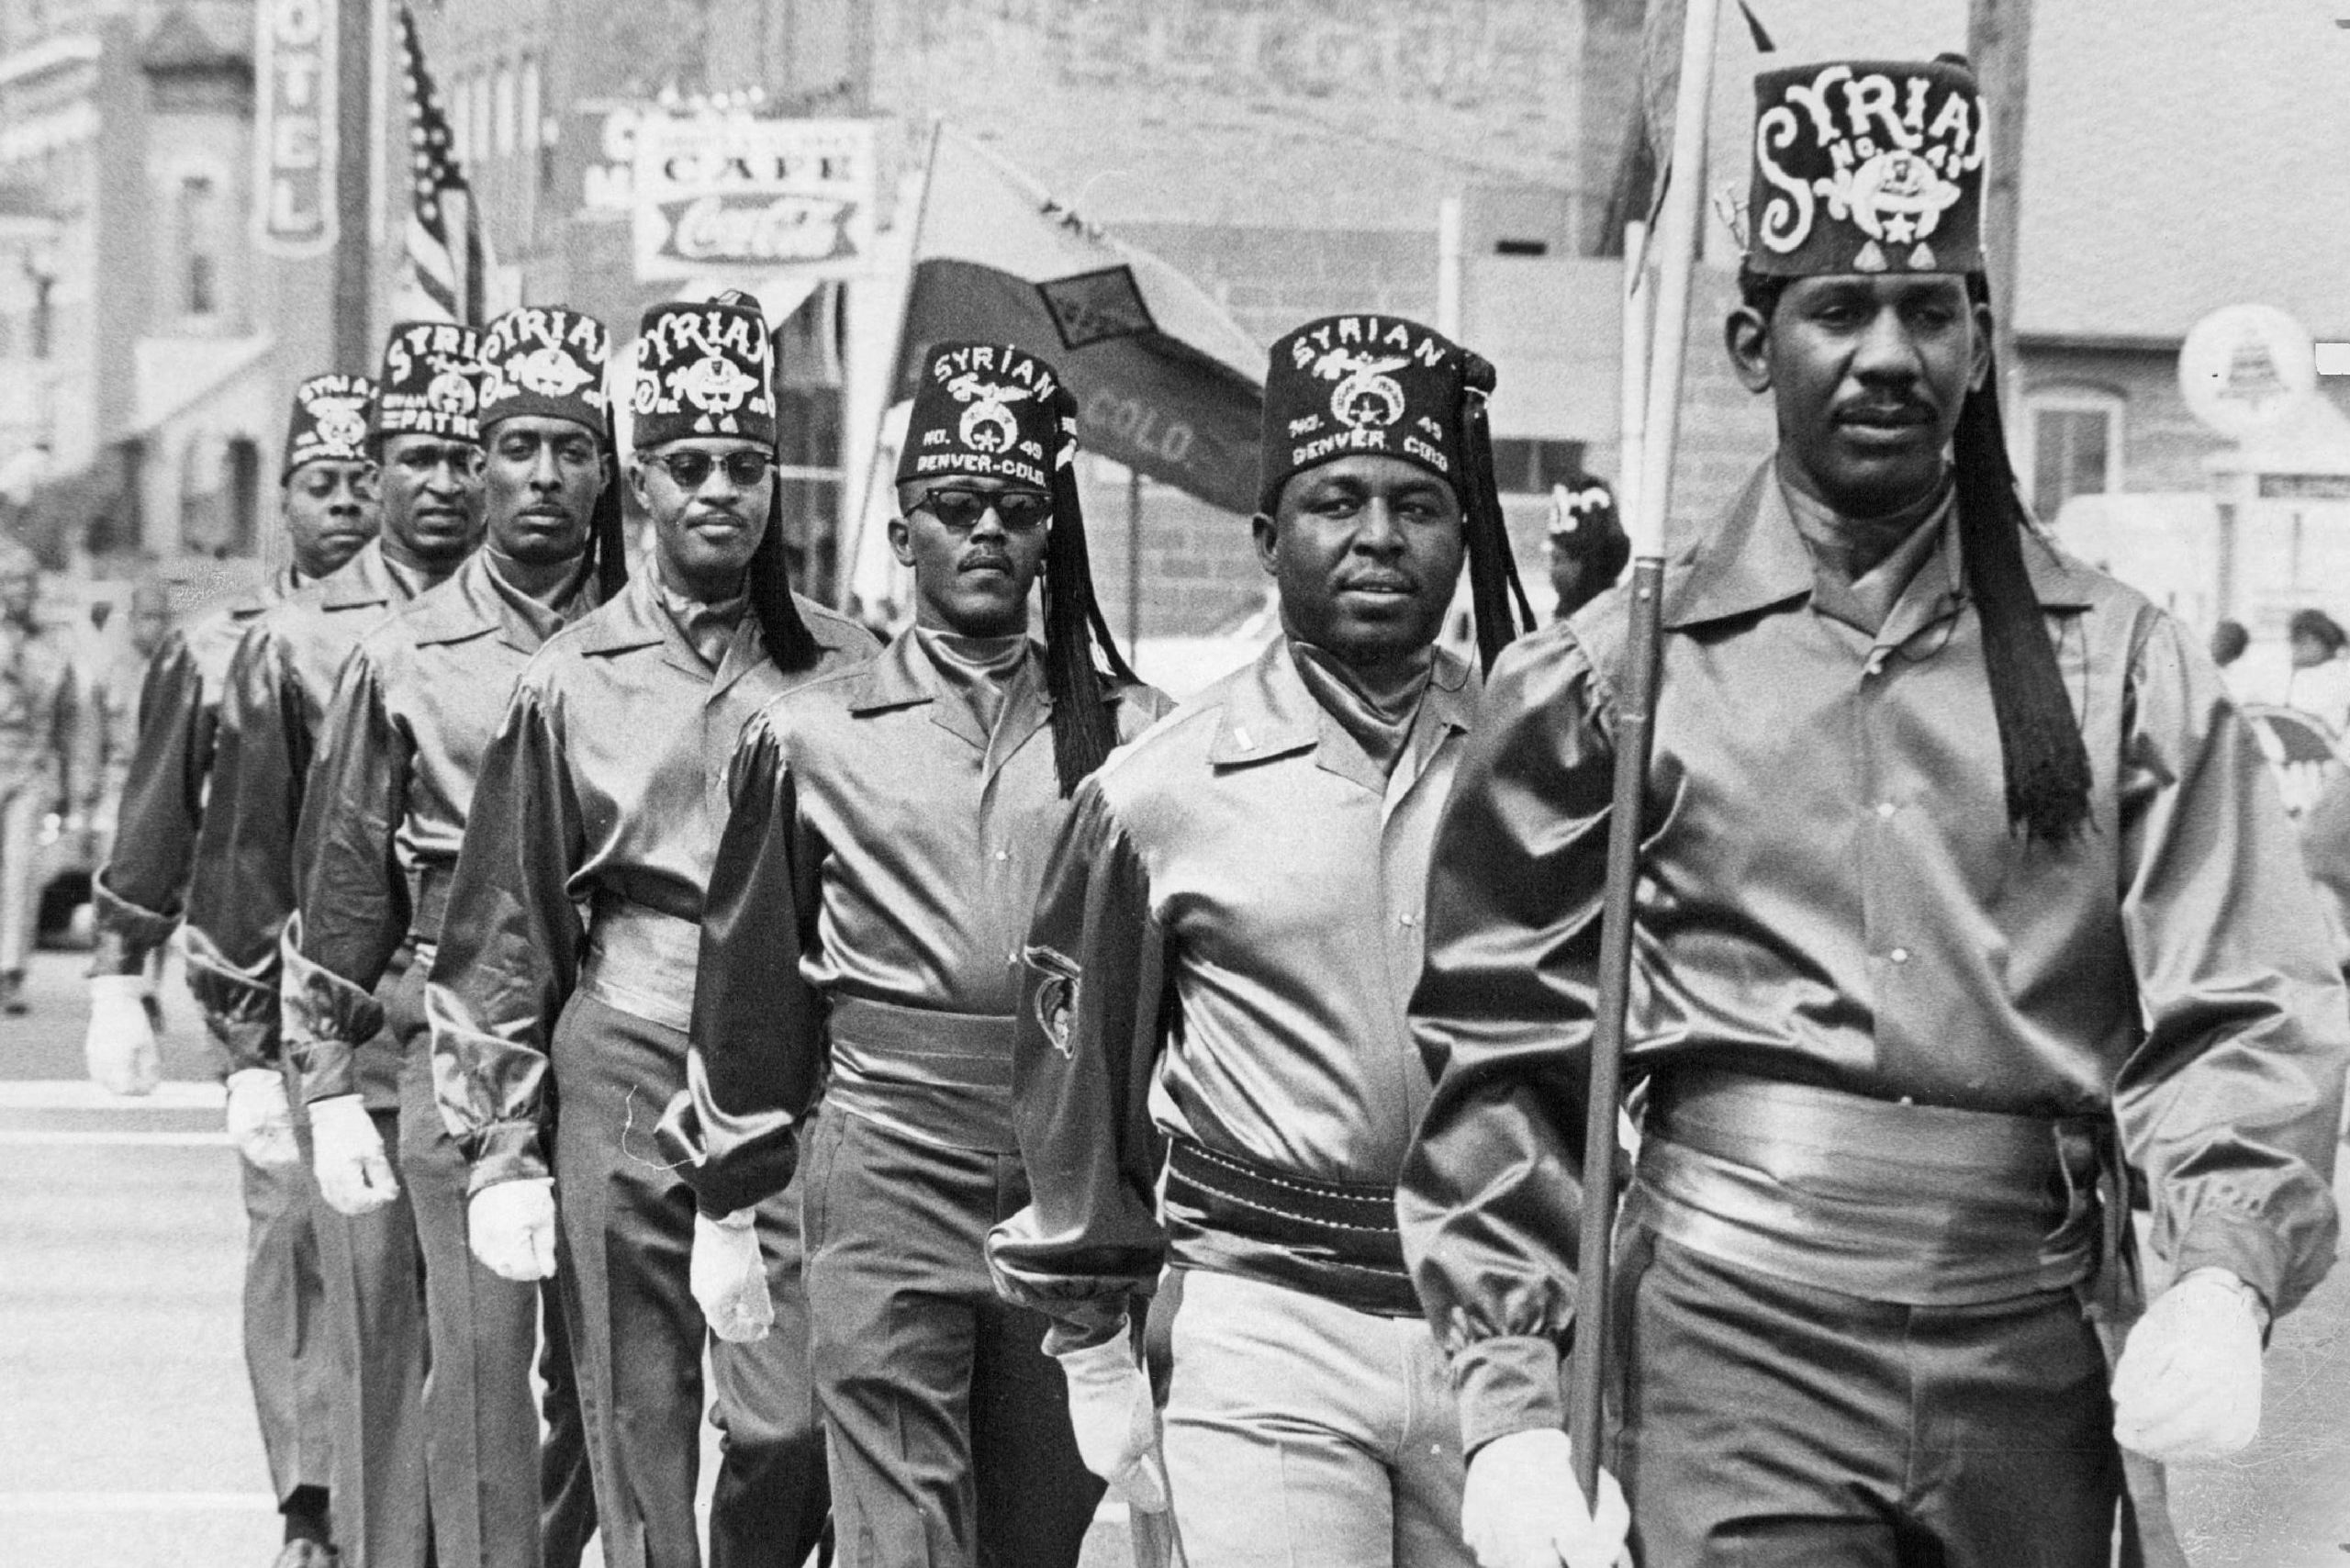 JUL 4 1969, JUL 5 1969, JUL 6 1969; Shriners of Syrian Temple 49 lead the Fourth of July parade whic